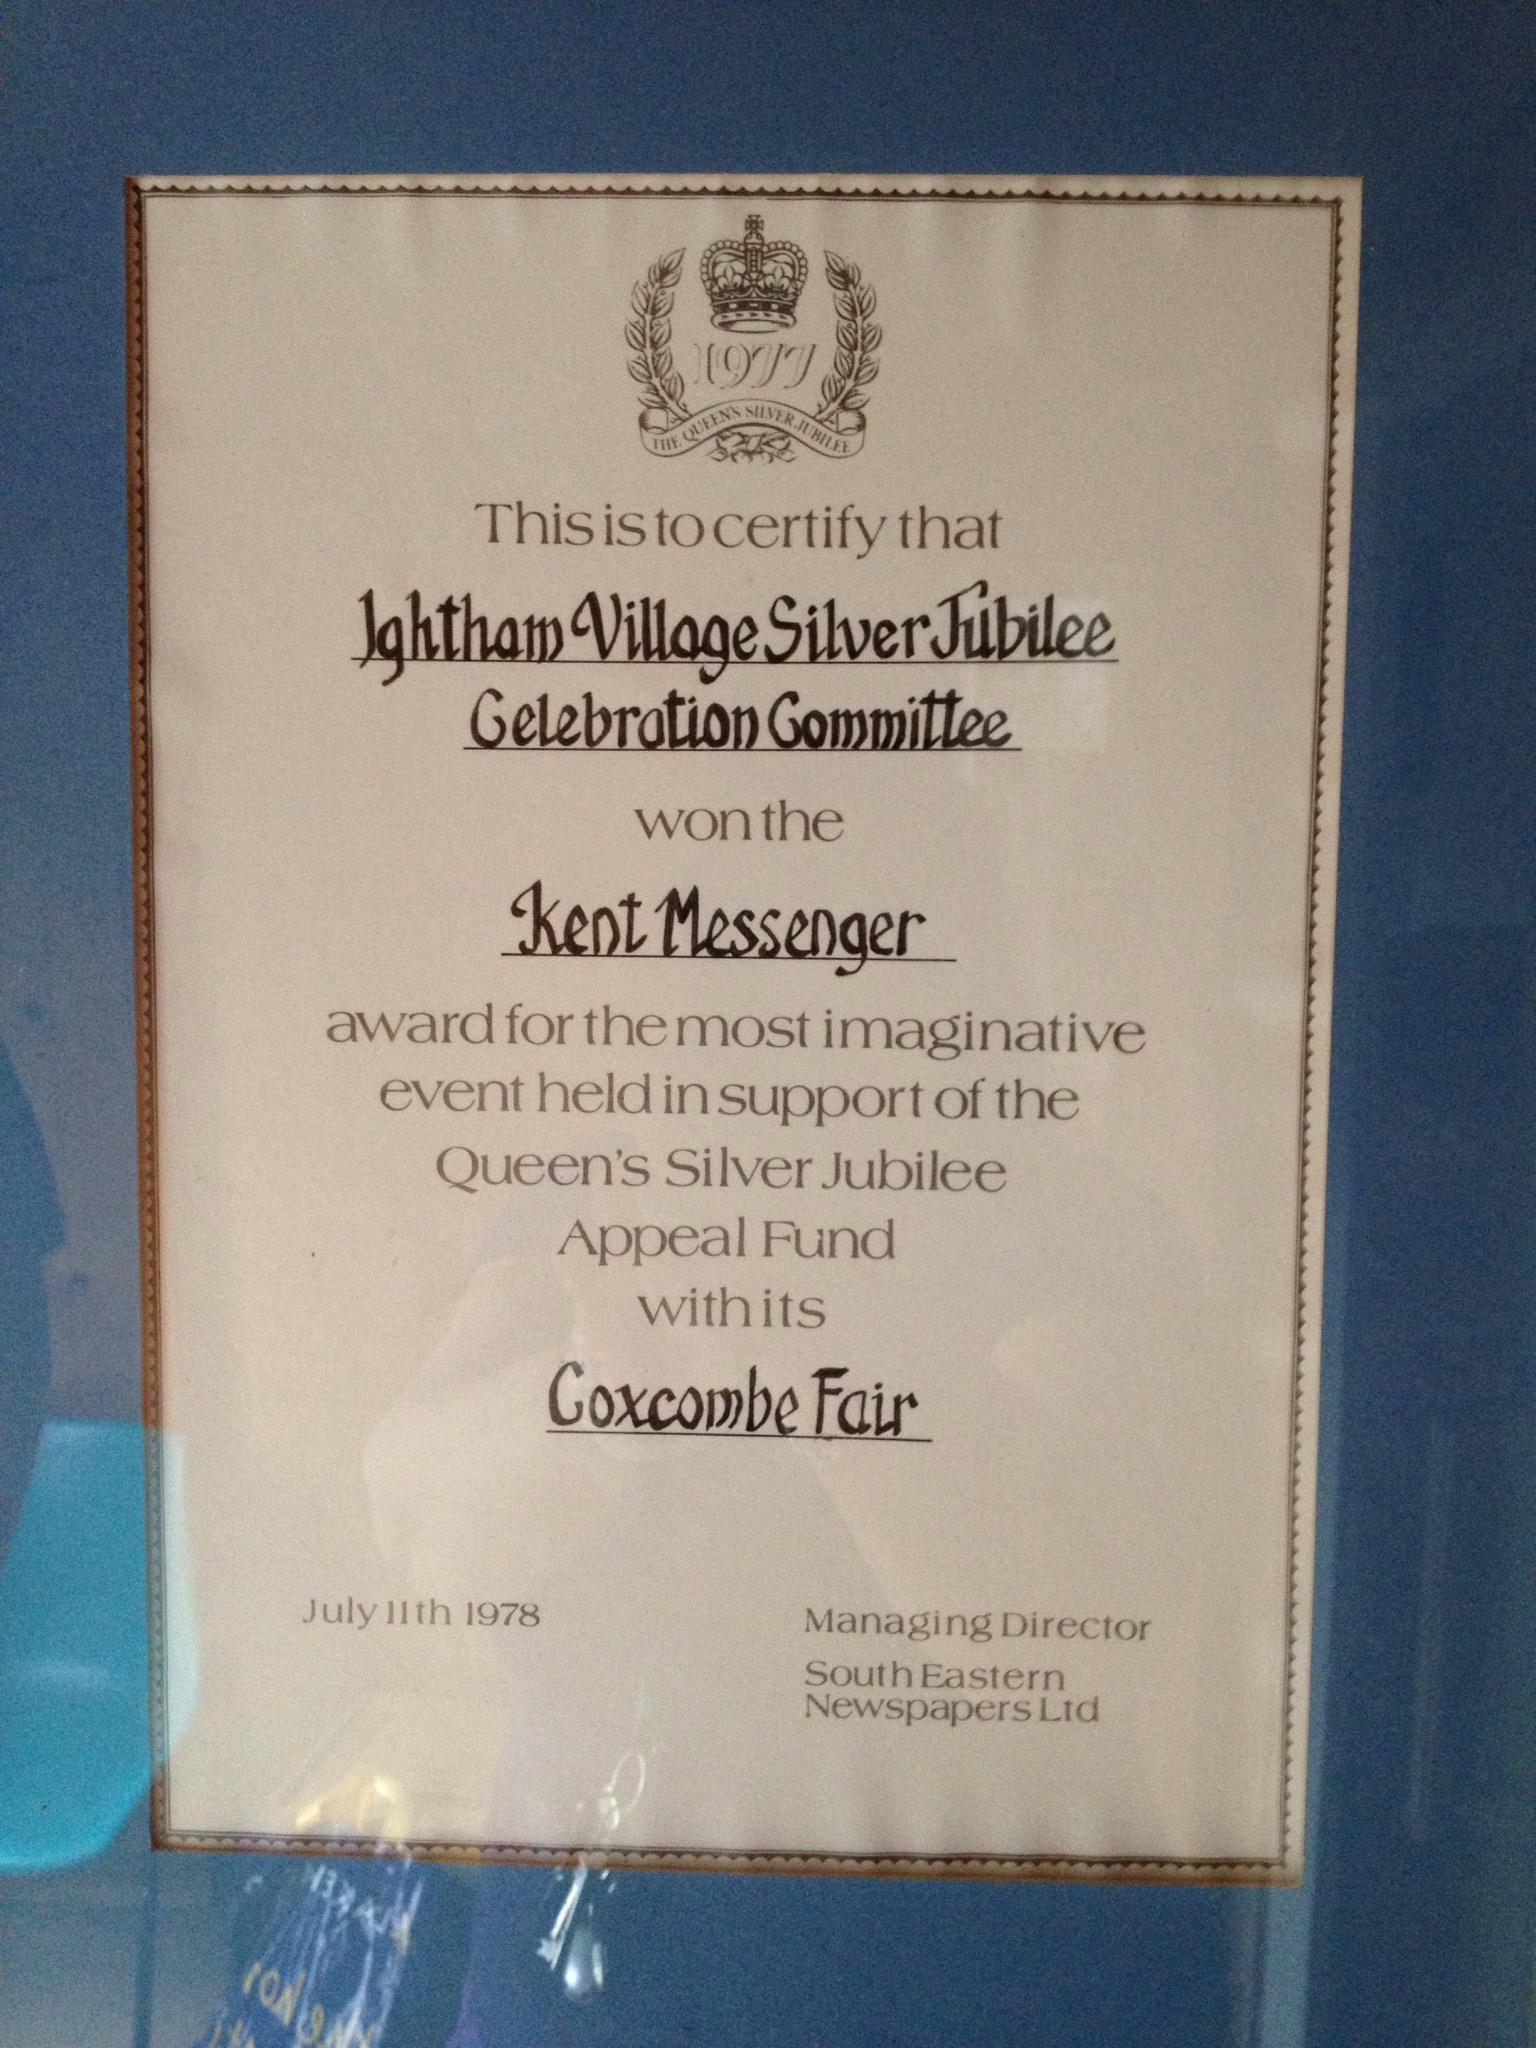 Ightham Village Silver Jubilee Coxcombe Fair Kent Messenger award certificate in a frame